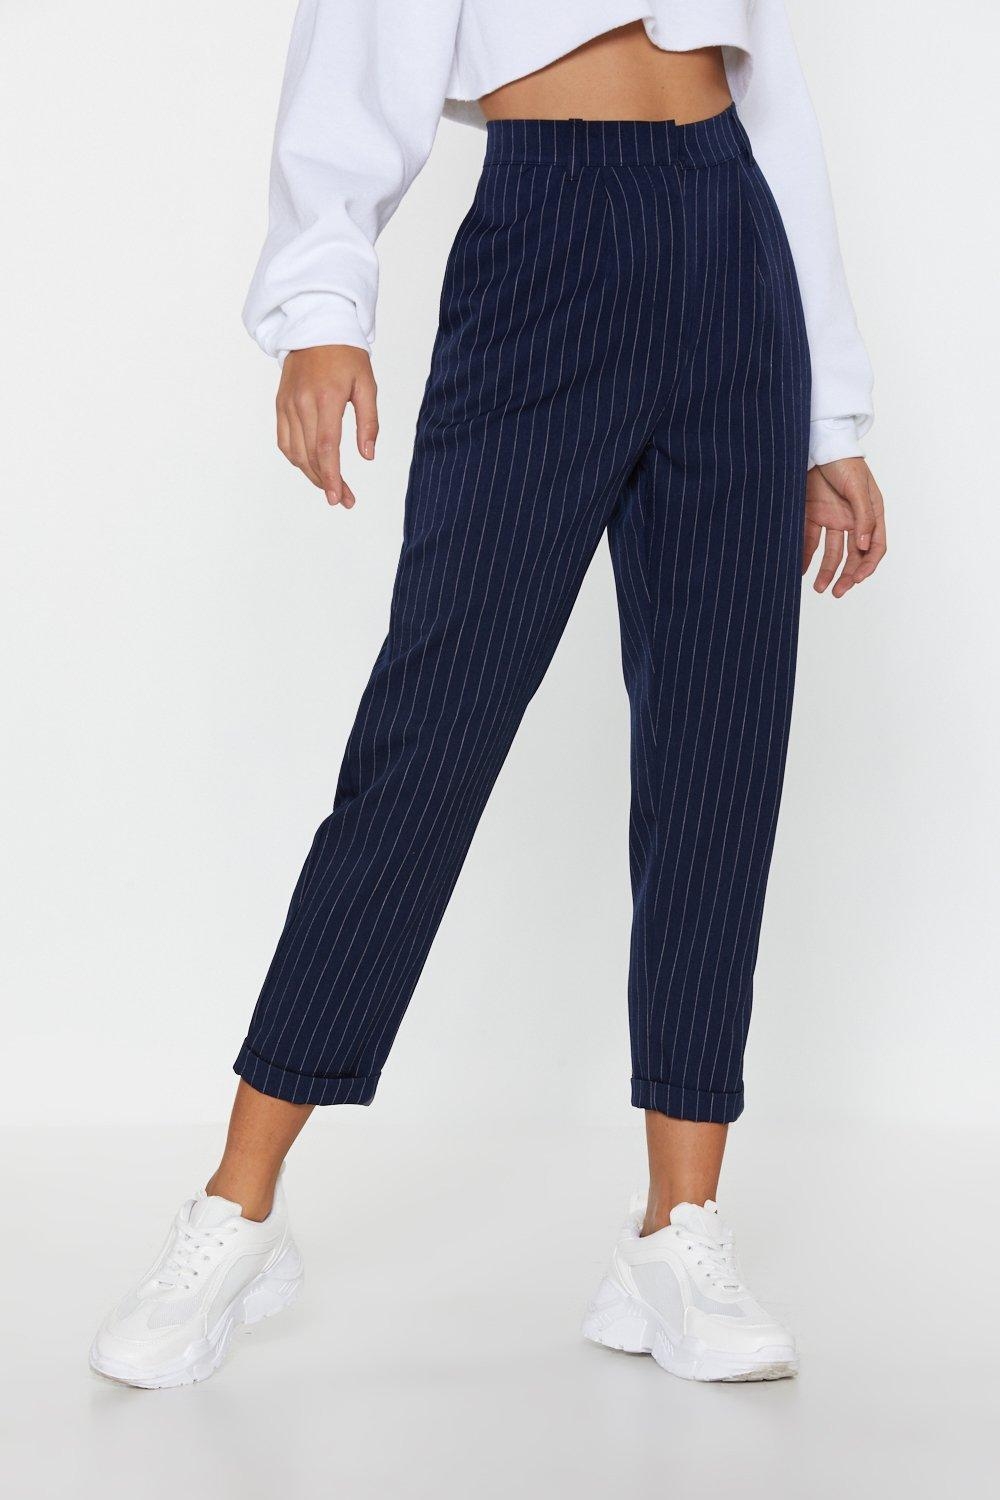 920ce05495 Womens Navy Pinstripe Turn Up Trousers